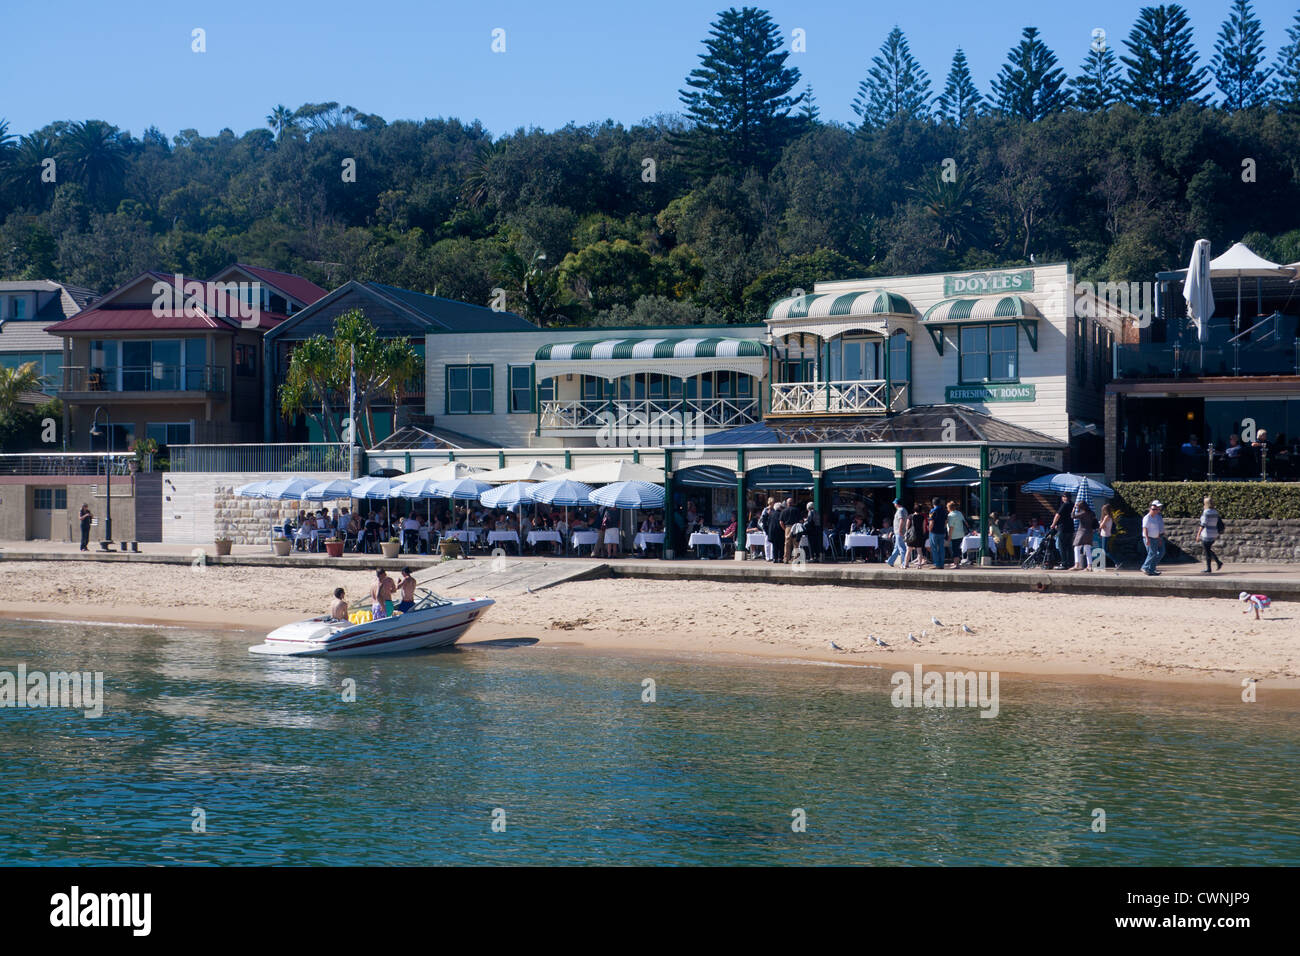 Doyles Restaurant and beach at Watsons Bay with boat in foreground Eastern Suburbs Sydney New South Wales Australia - Stock Image